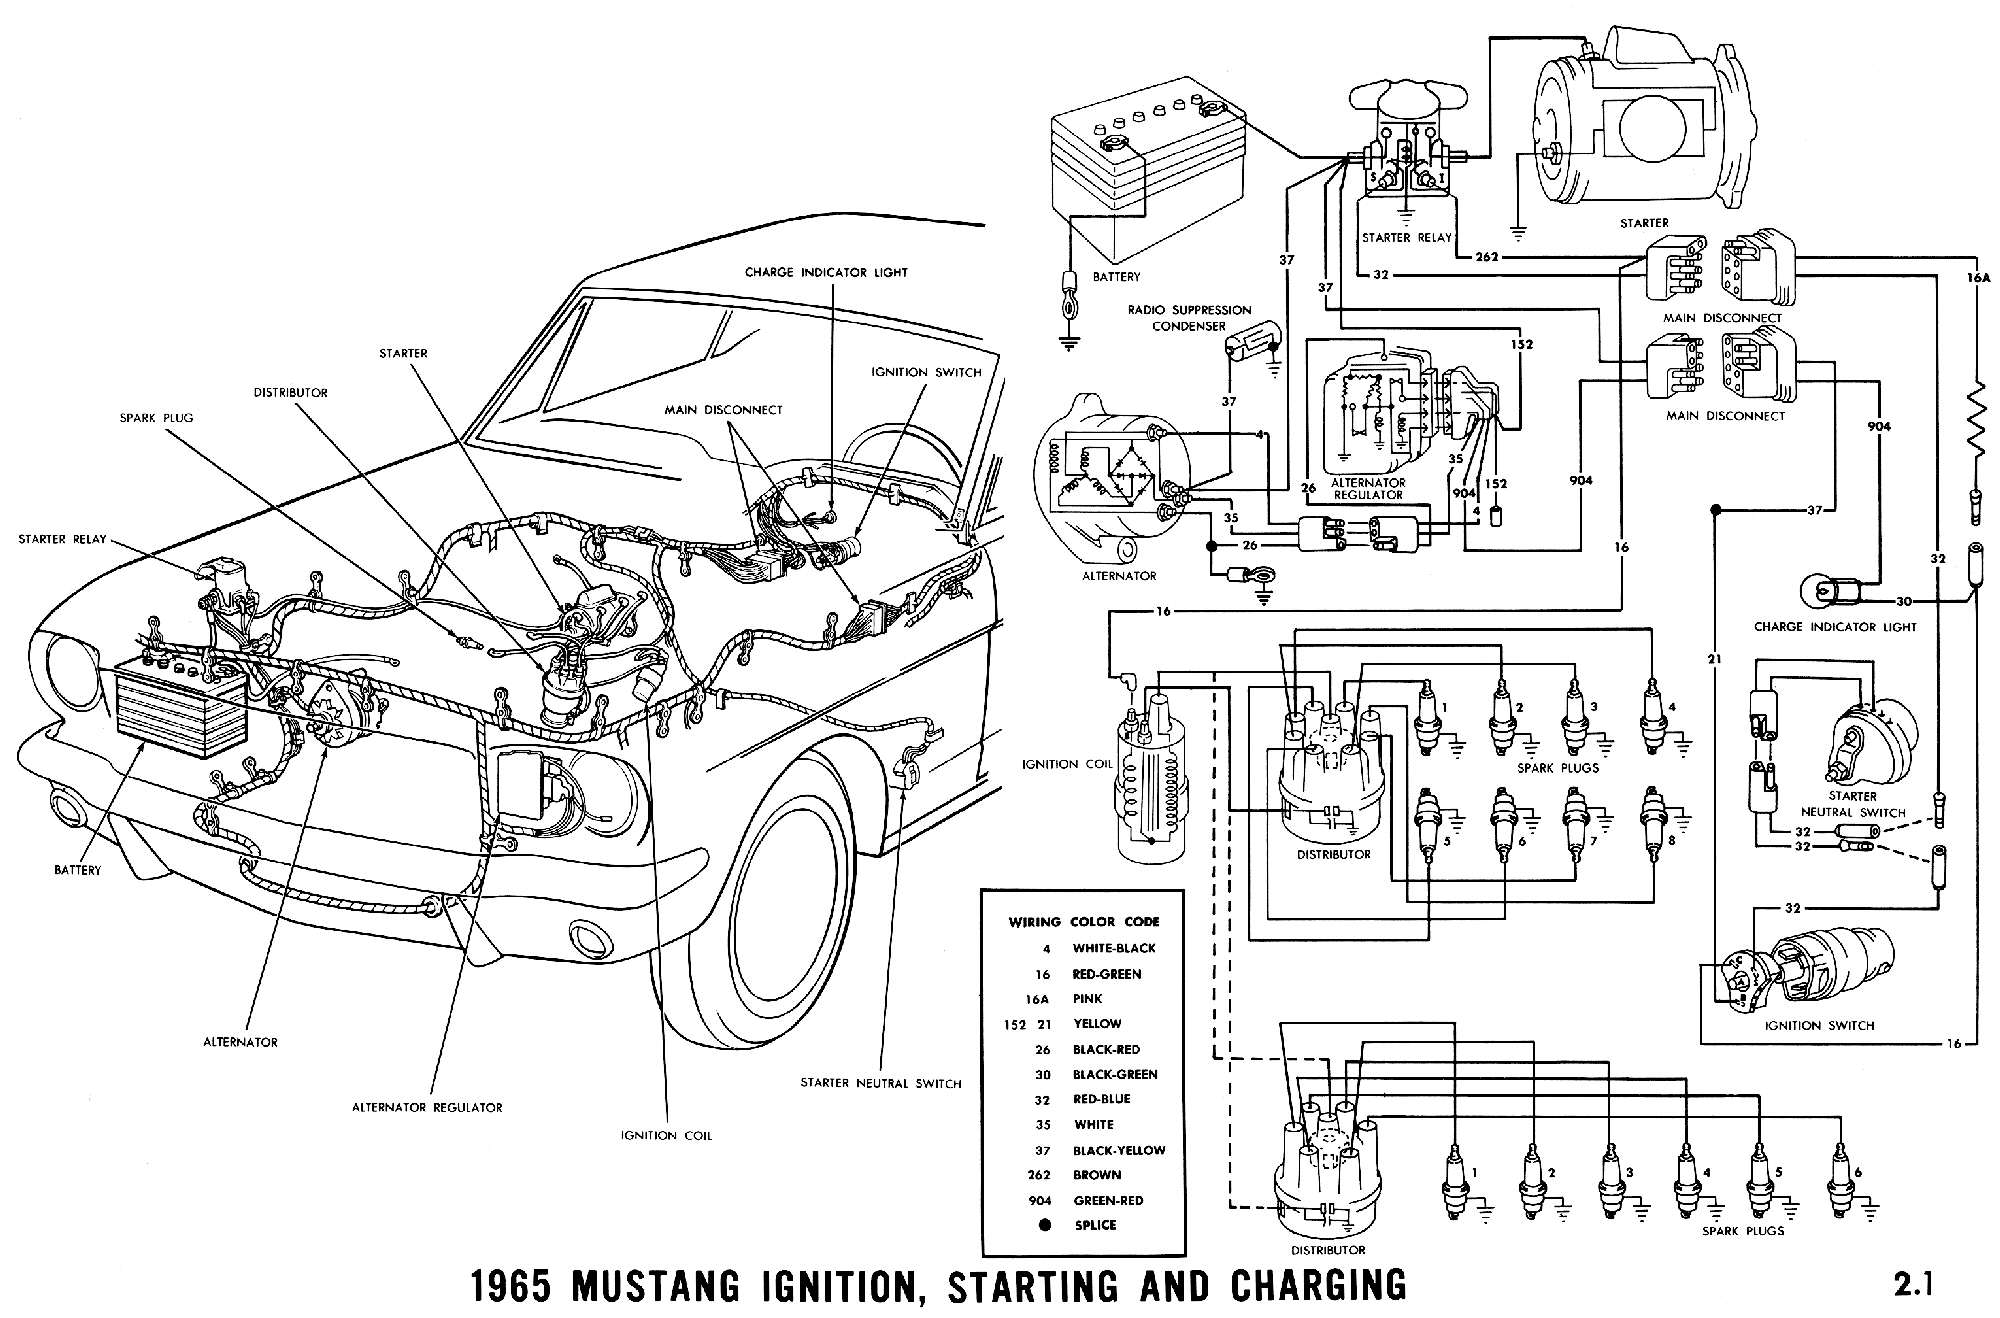 1965c 1965 mustang wiring diagrams average joe restoration 1965 ford mustang wiring diagram at crackthecode.co